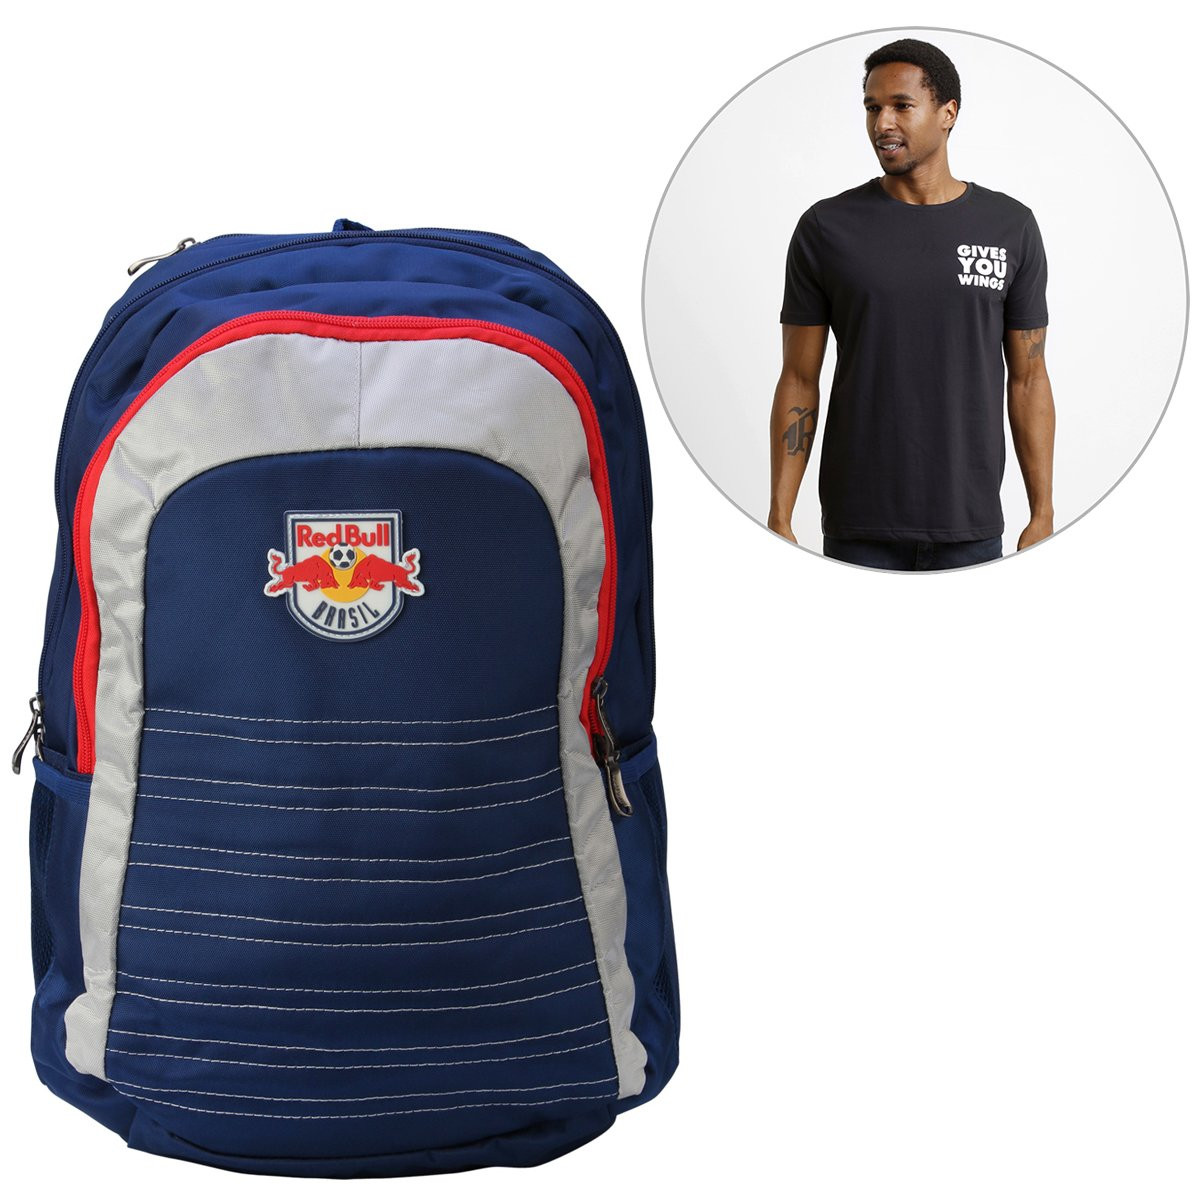 1941488dc1a08 Kit Mochila Red Bull Note + Camiseta Red Bull Racing Stock Car Small Gives  - Compre Agora